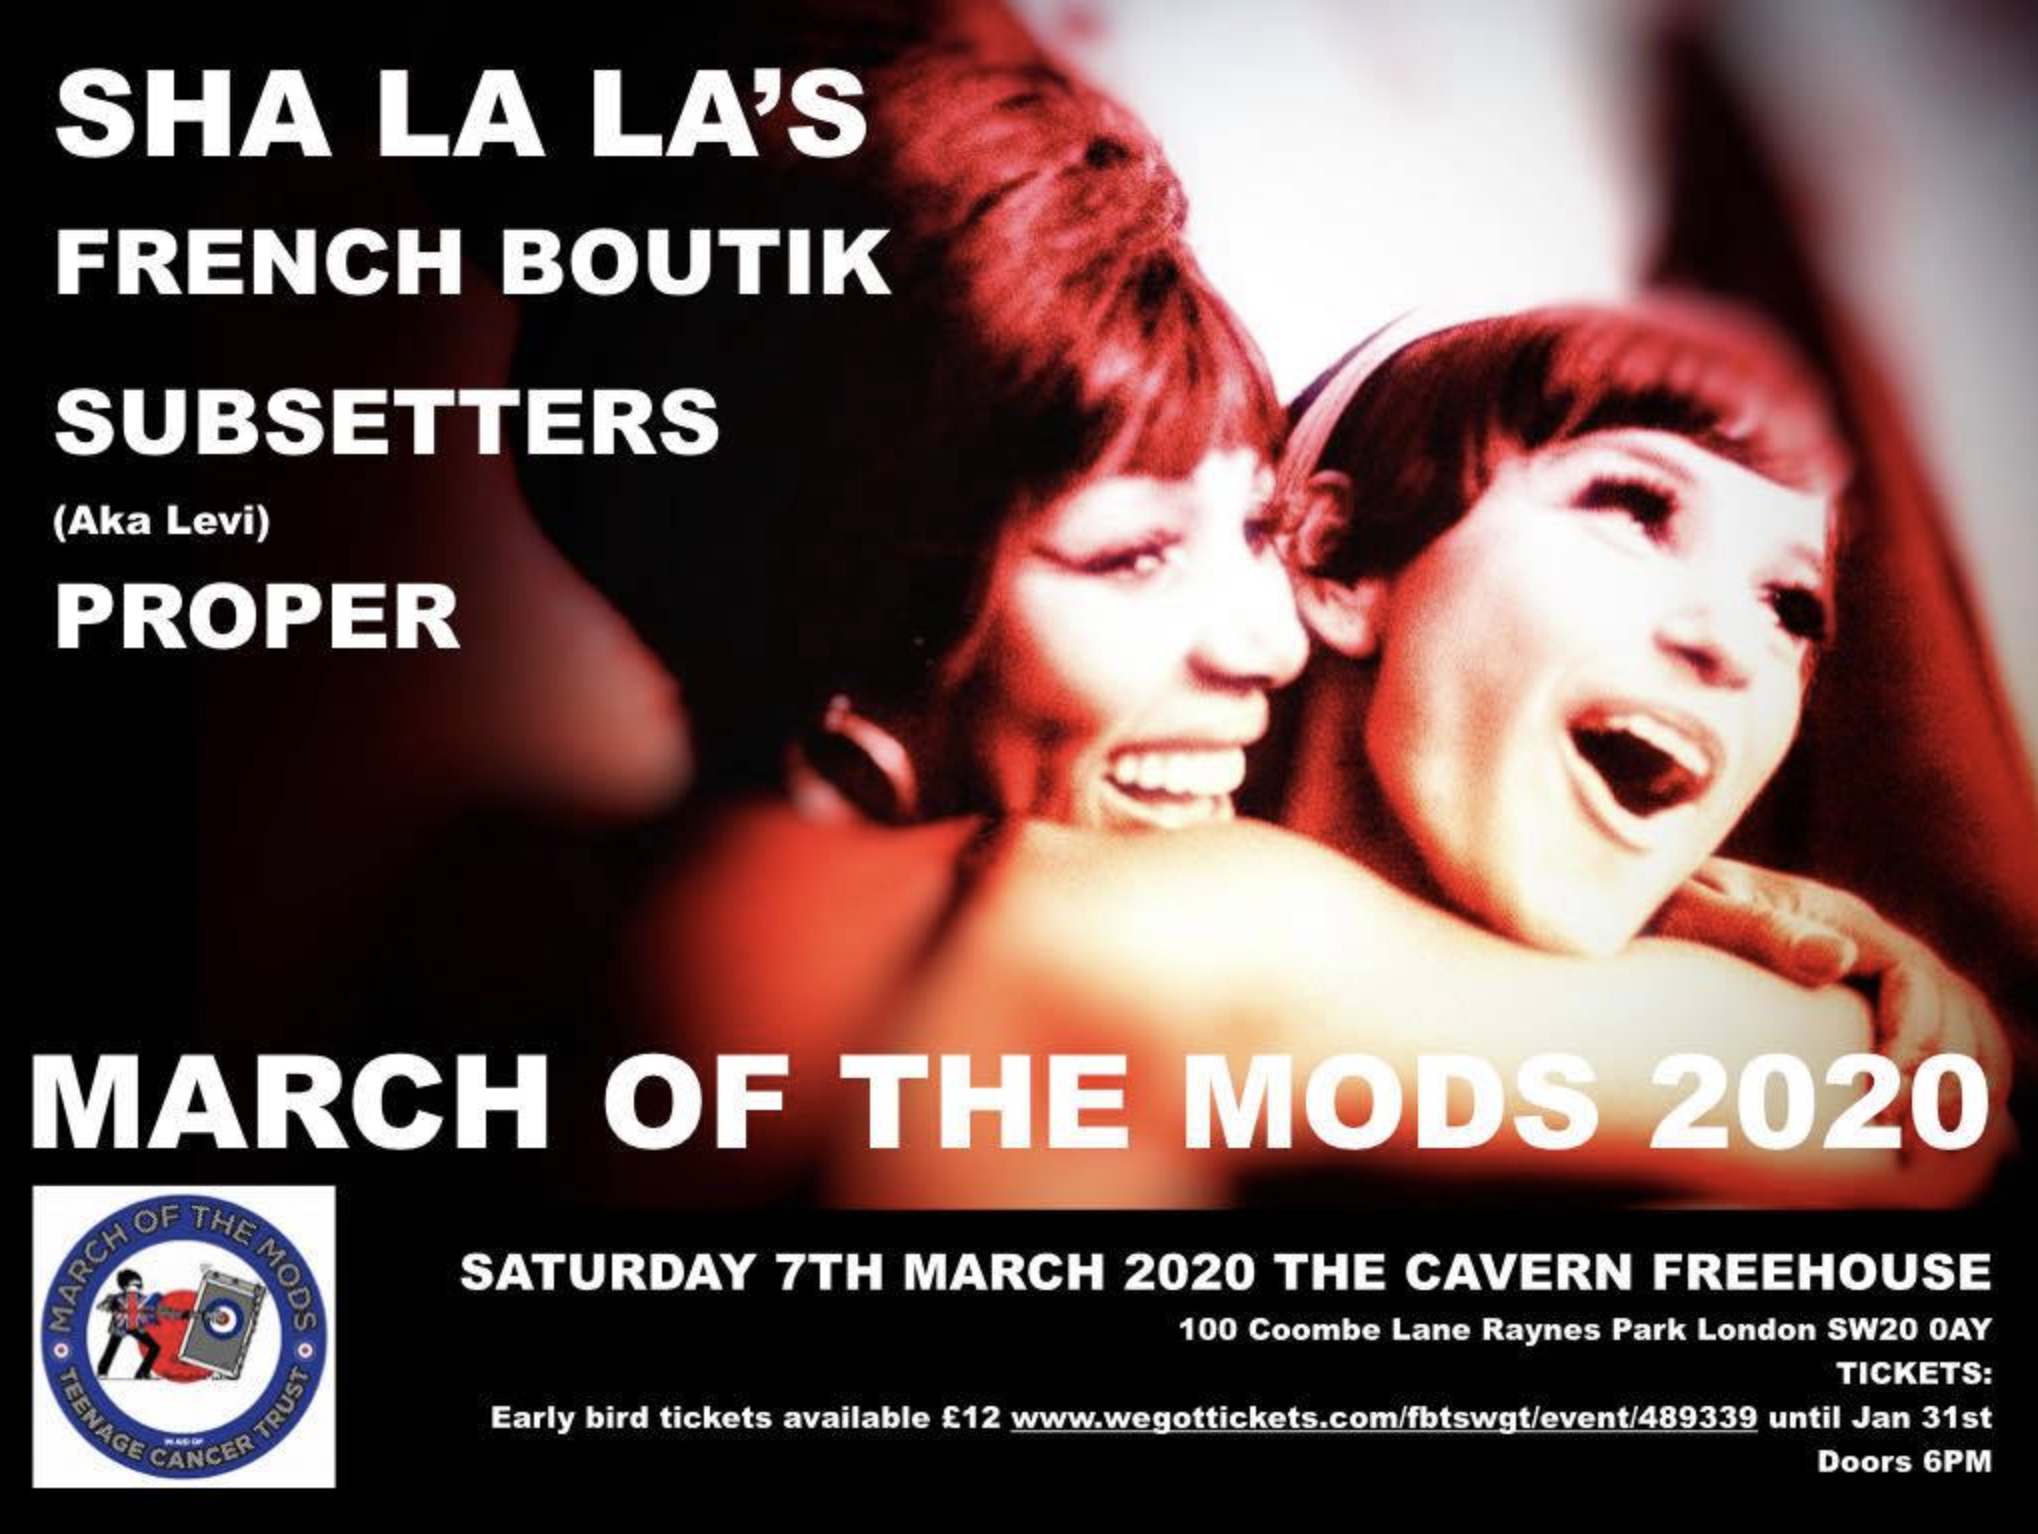 March Of The Mods South West London flyer